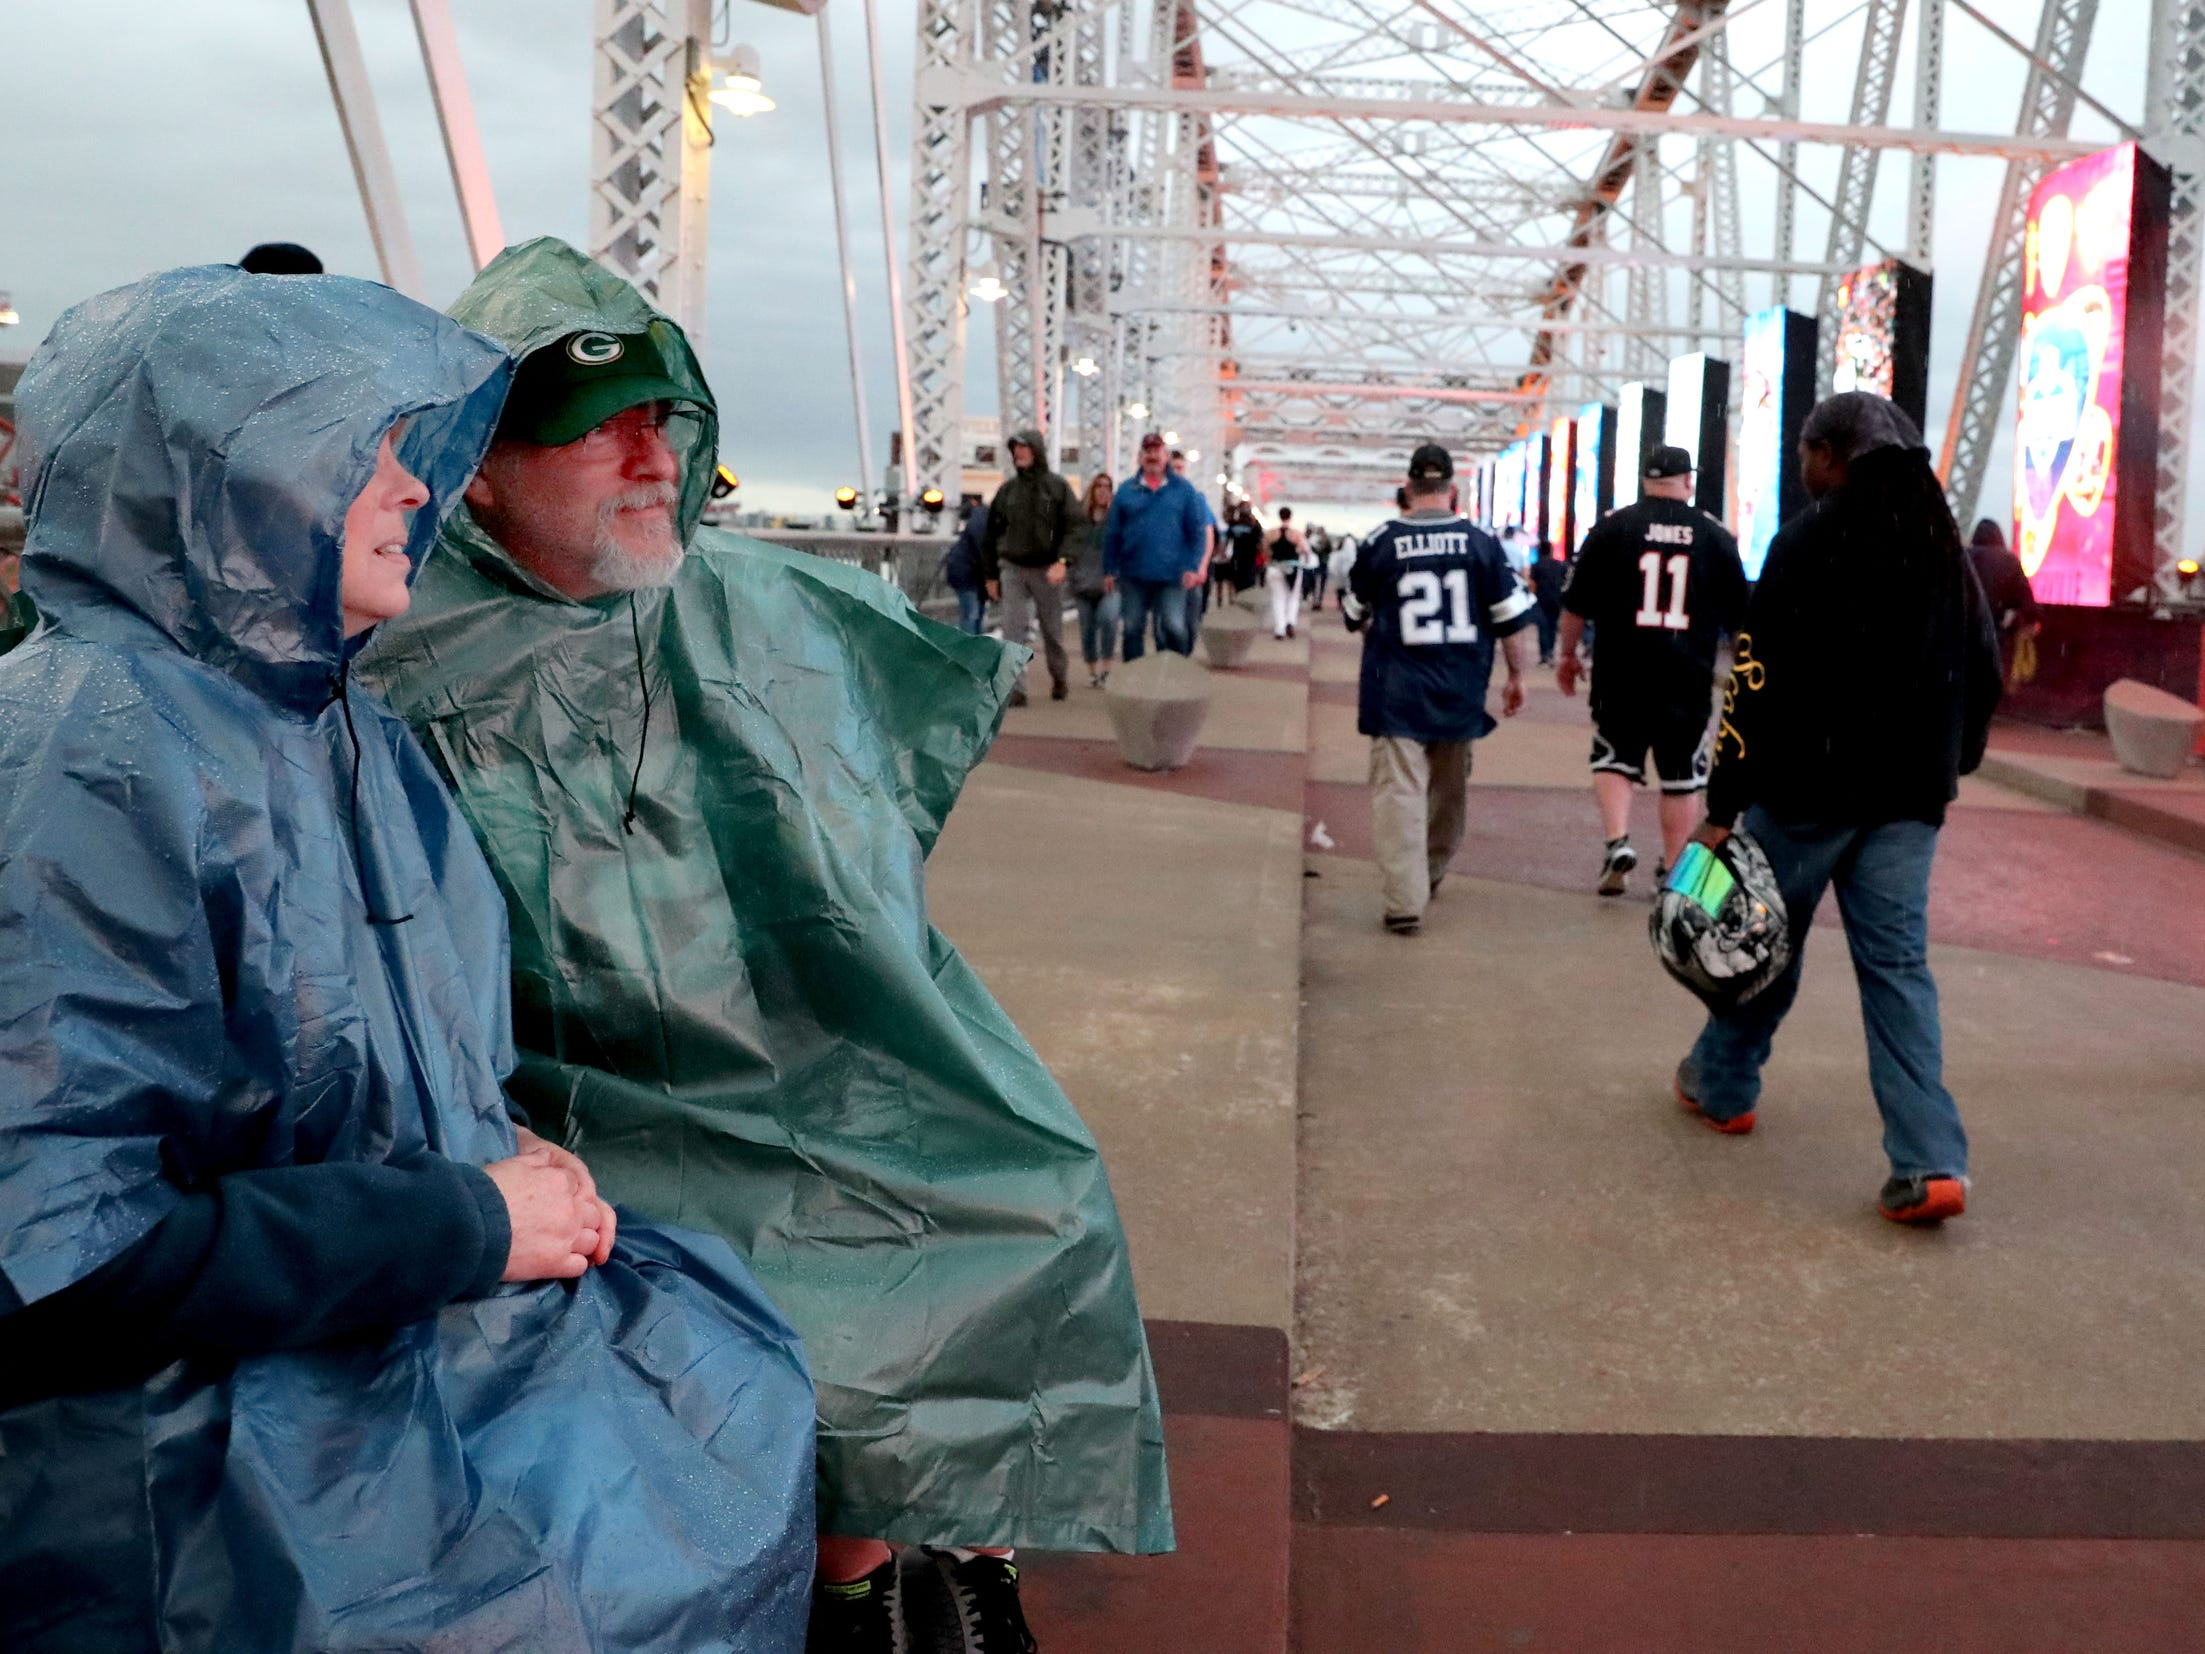 Sherry and Wayne Nisiewicz, both Green Bay fans try to stay dry as they sit on the Seigenthaler Bridge and watch the start of the NFL Draft show as others pass by on Thursday, April 25, 2019, in Nashville, Tennessee.